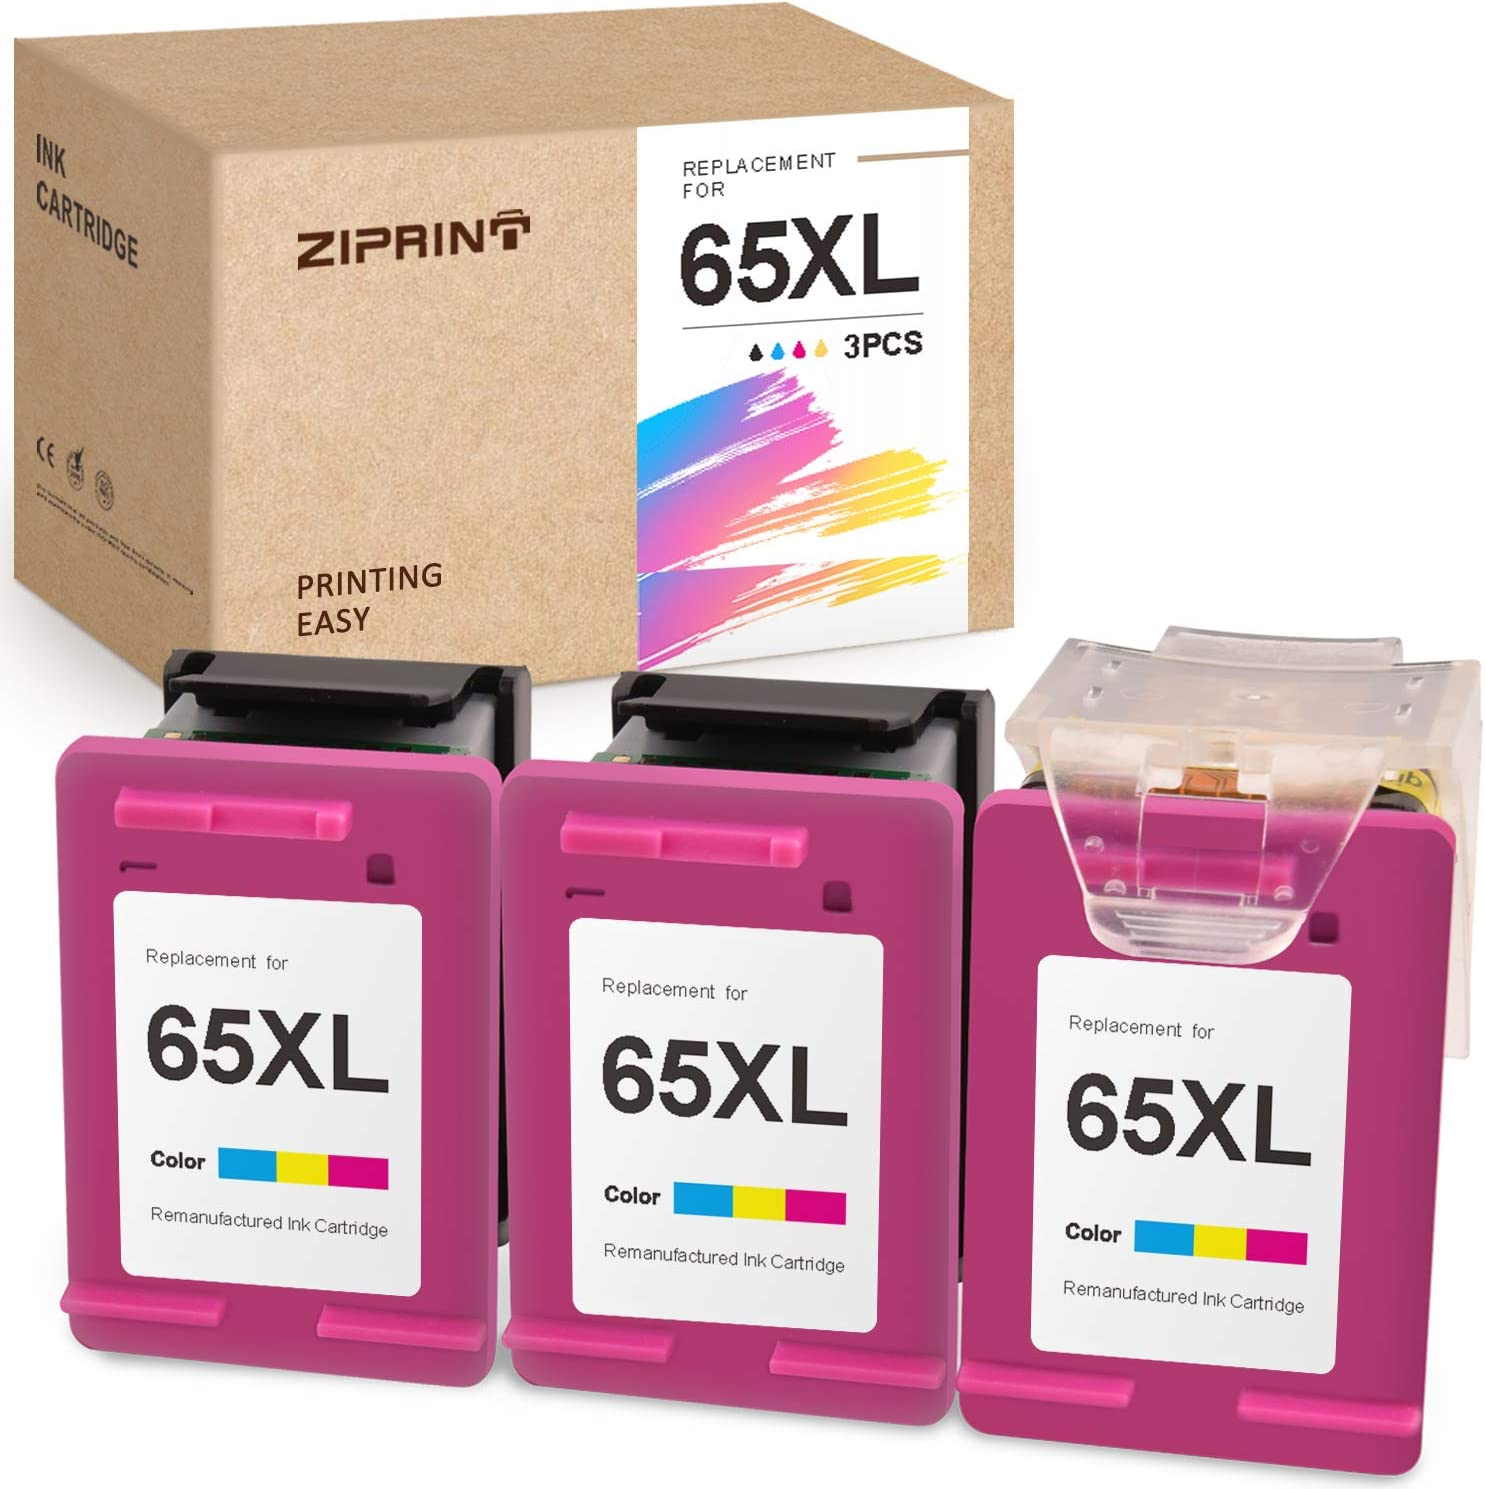 ZIPRINT Remanufactured Ink Cartridge Replacement for HP 65 65XL ECO-Saver for Deskjet 3755 3752 3722 2655 2652 2622 3758 2624 3720 2635 Envy 5055 5052 5010 5020 5030 (3 Tri-Color)